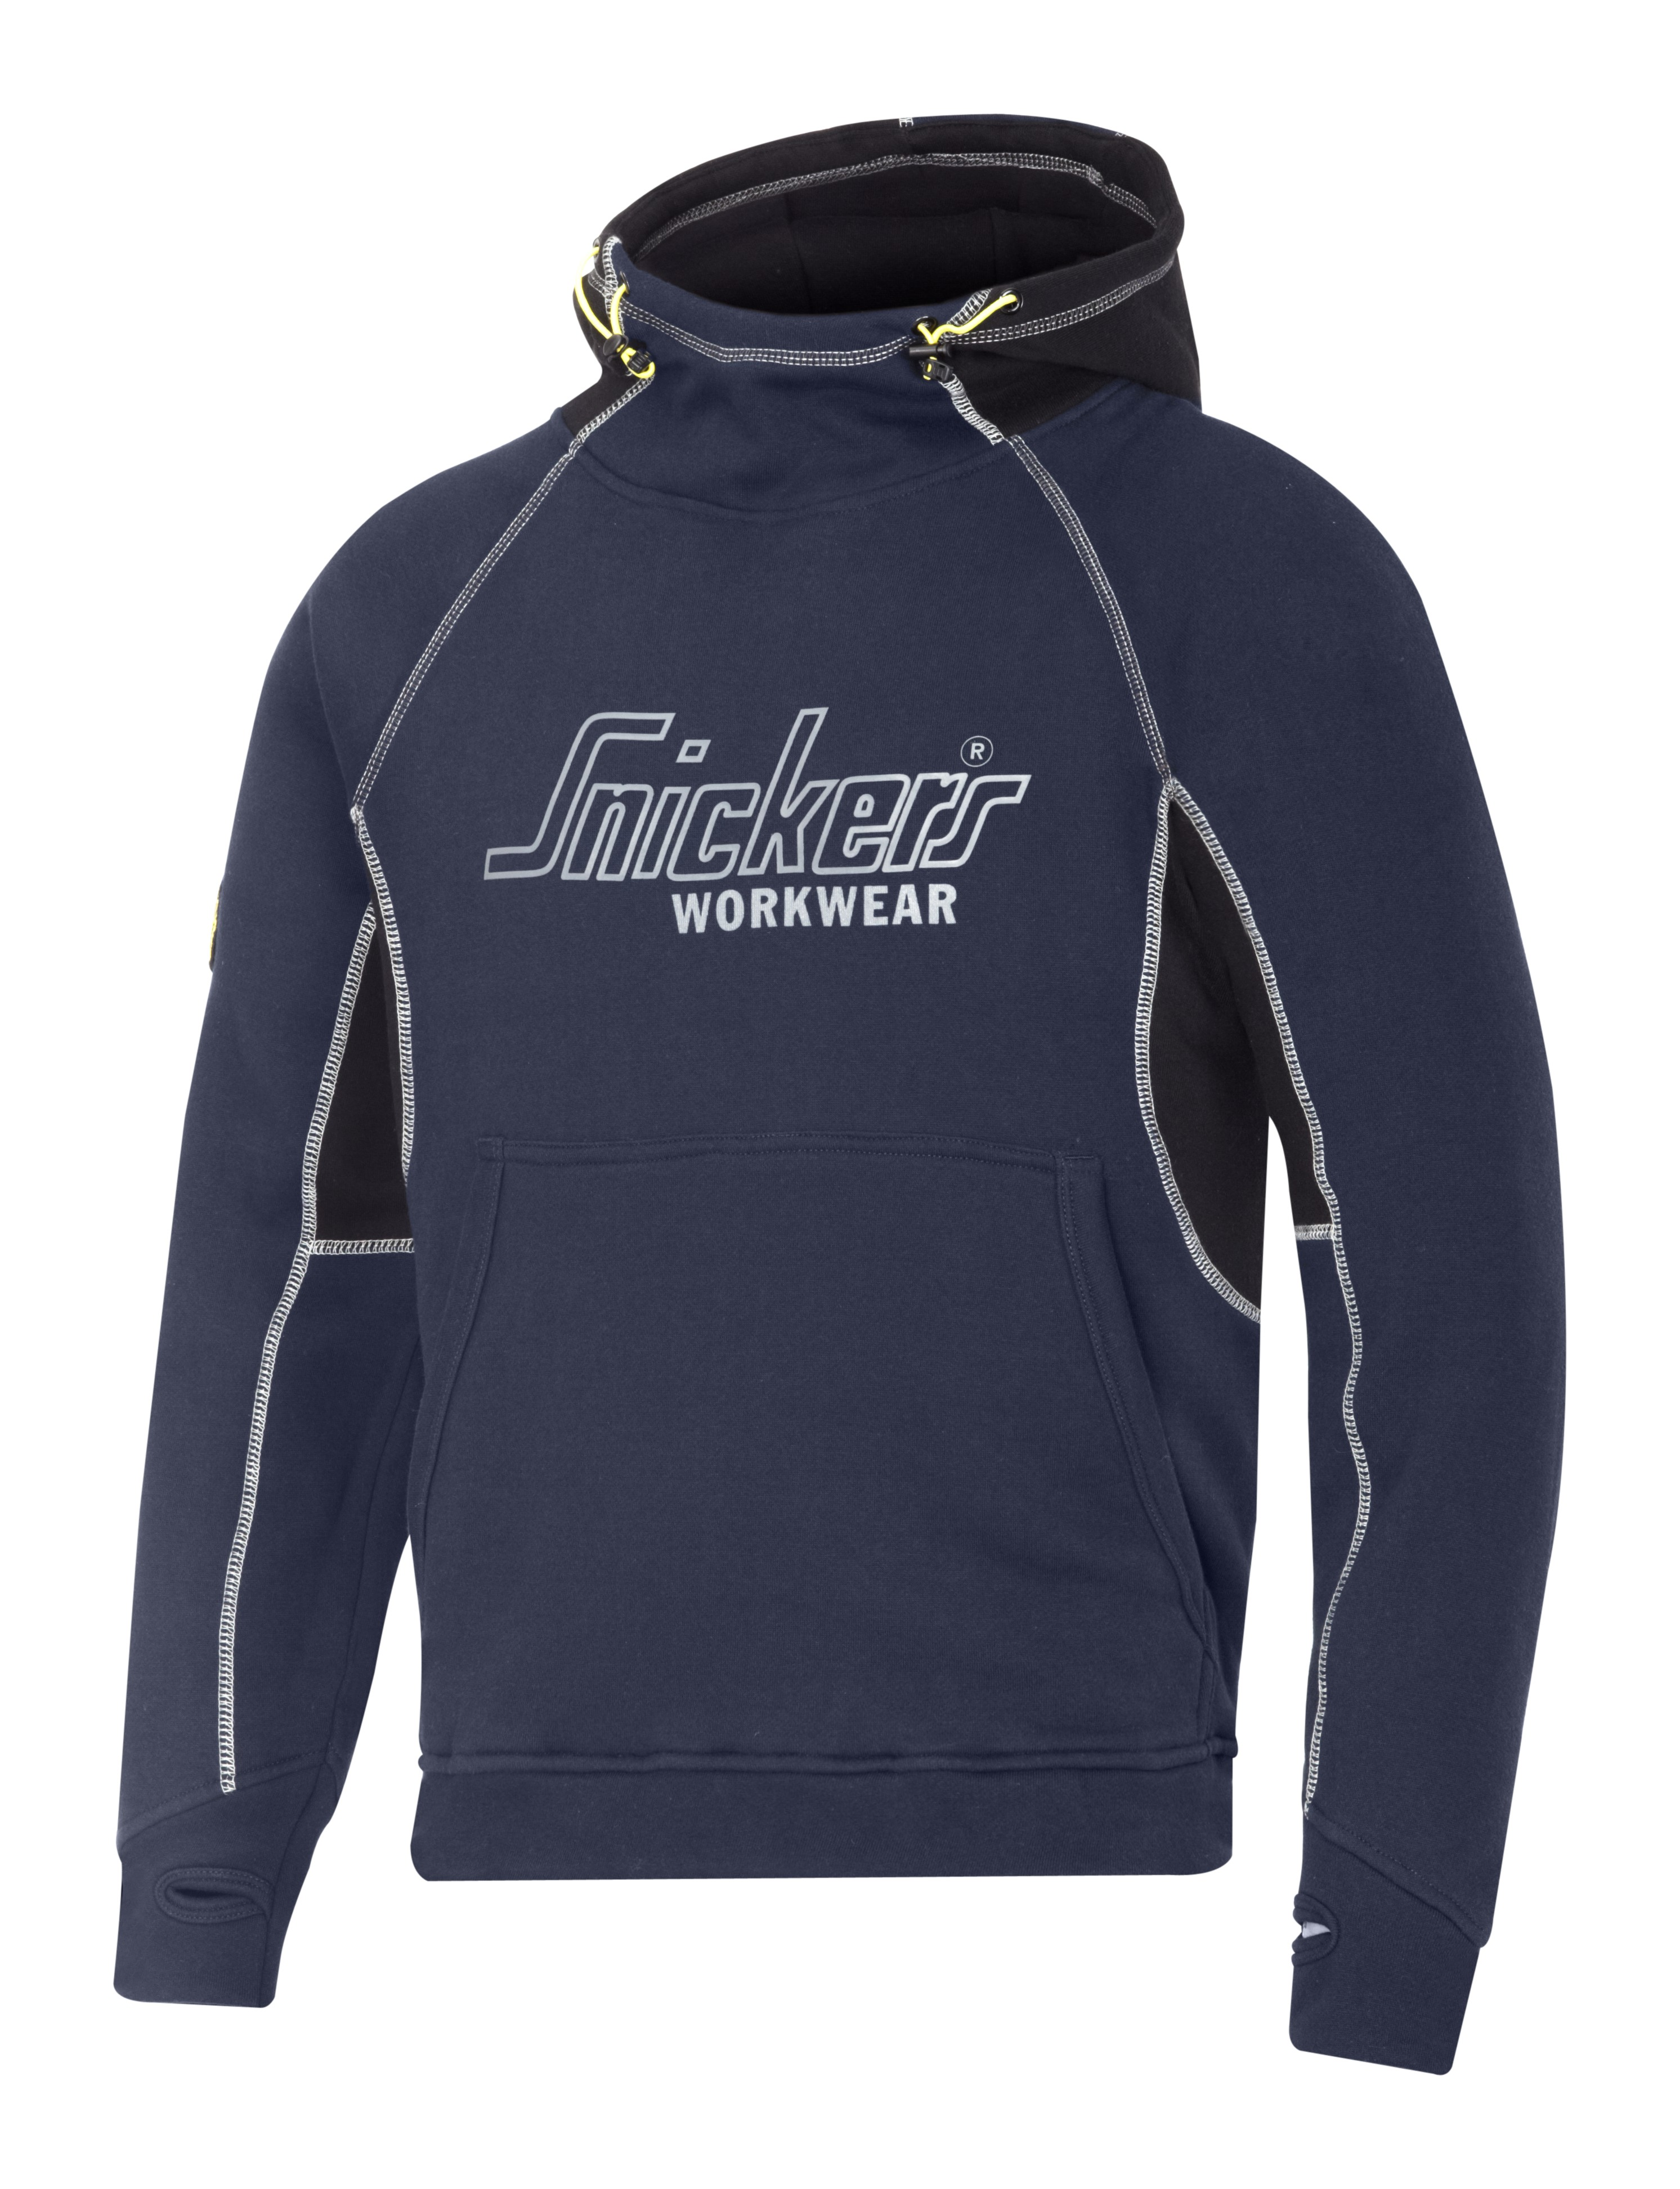 New-Mens-Snickers-Workwear-Logo-Hoodie-Long-Sleeved-Hooded-Sweaters-Size-S-XXL